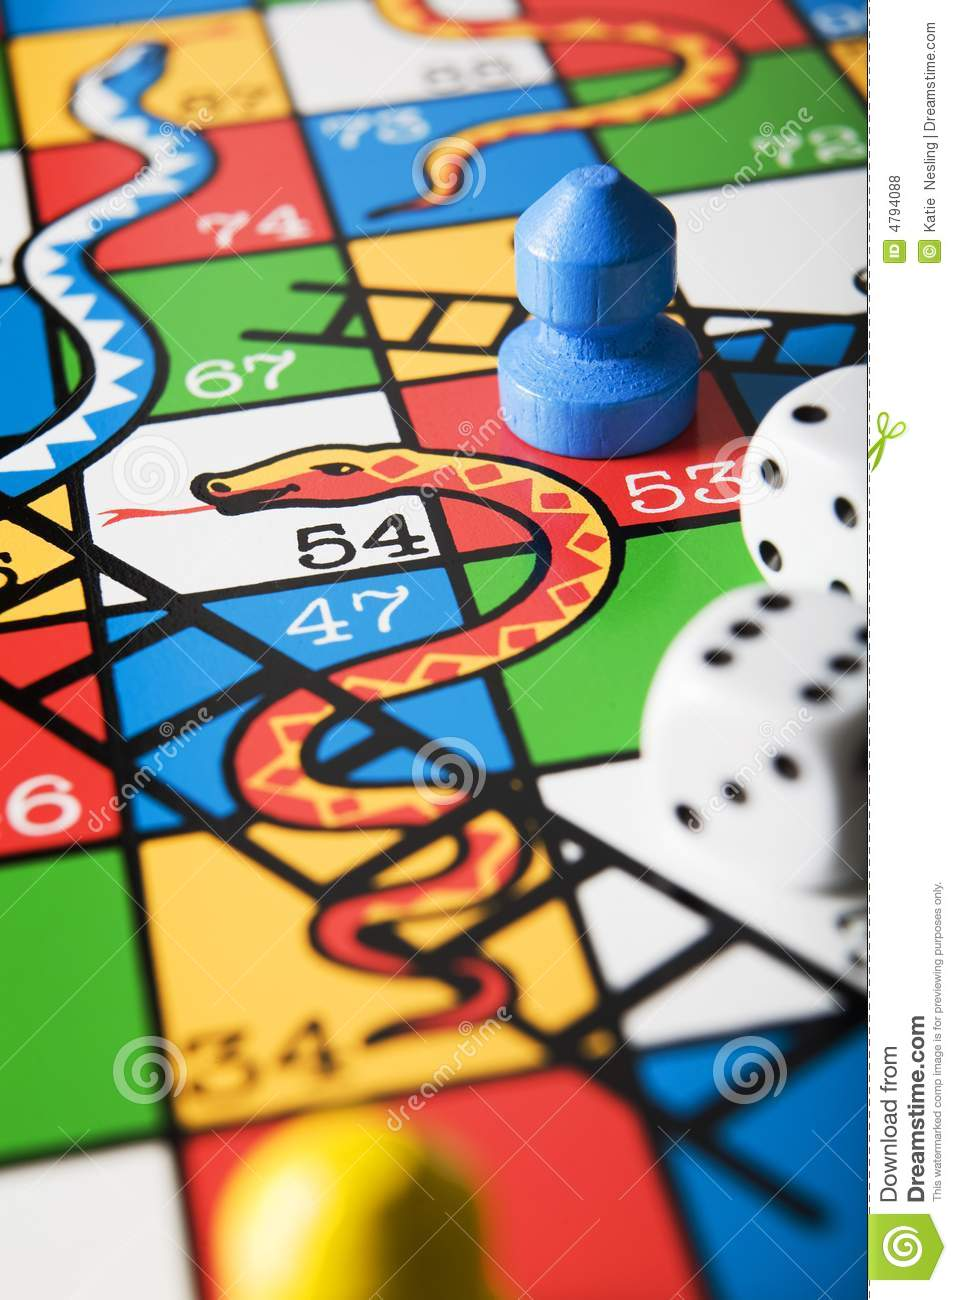 Snakes And Ladder Board Royalty Free Stock Photos Image